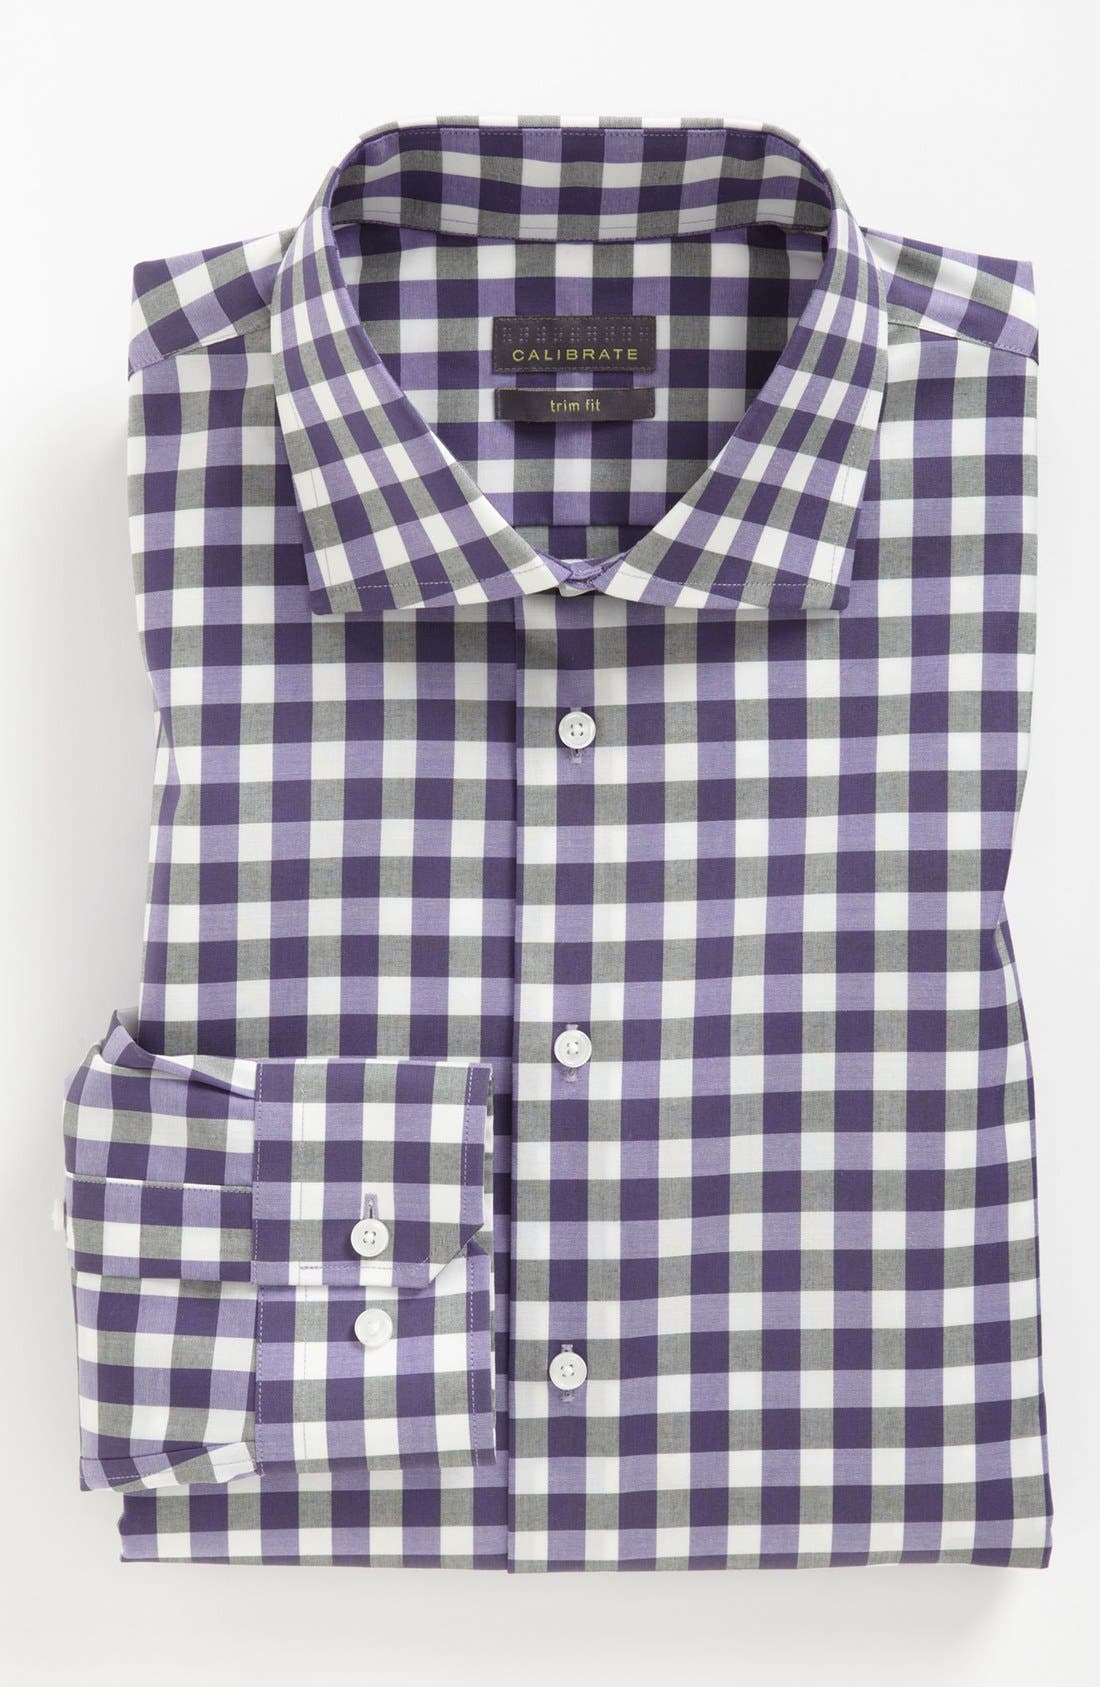 Main Image - Calibrate Trim Fit Non-Iron Gingham Dress Shirt